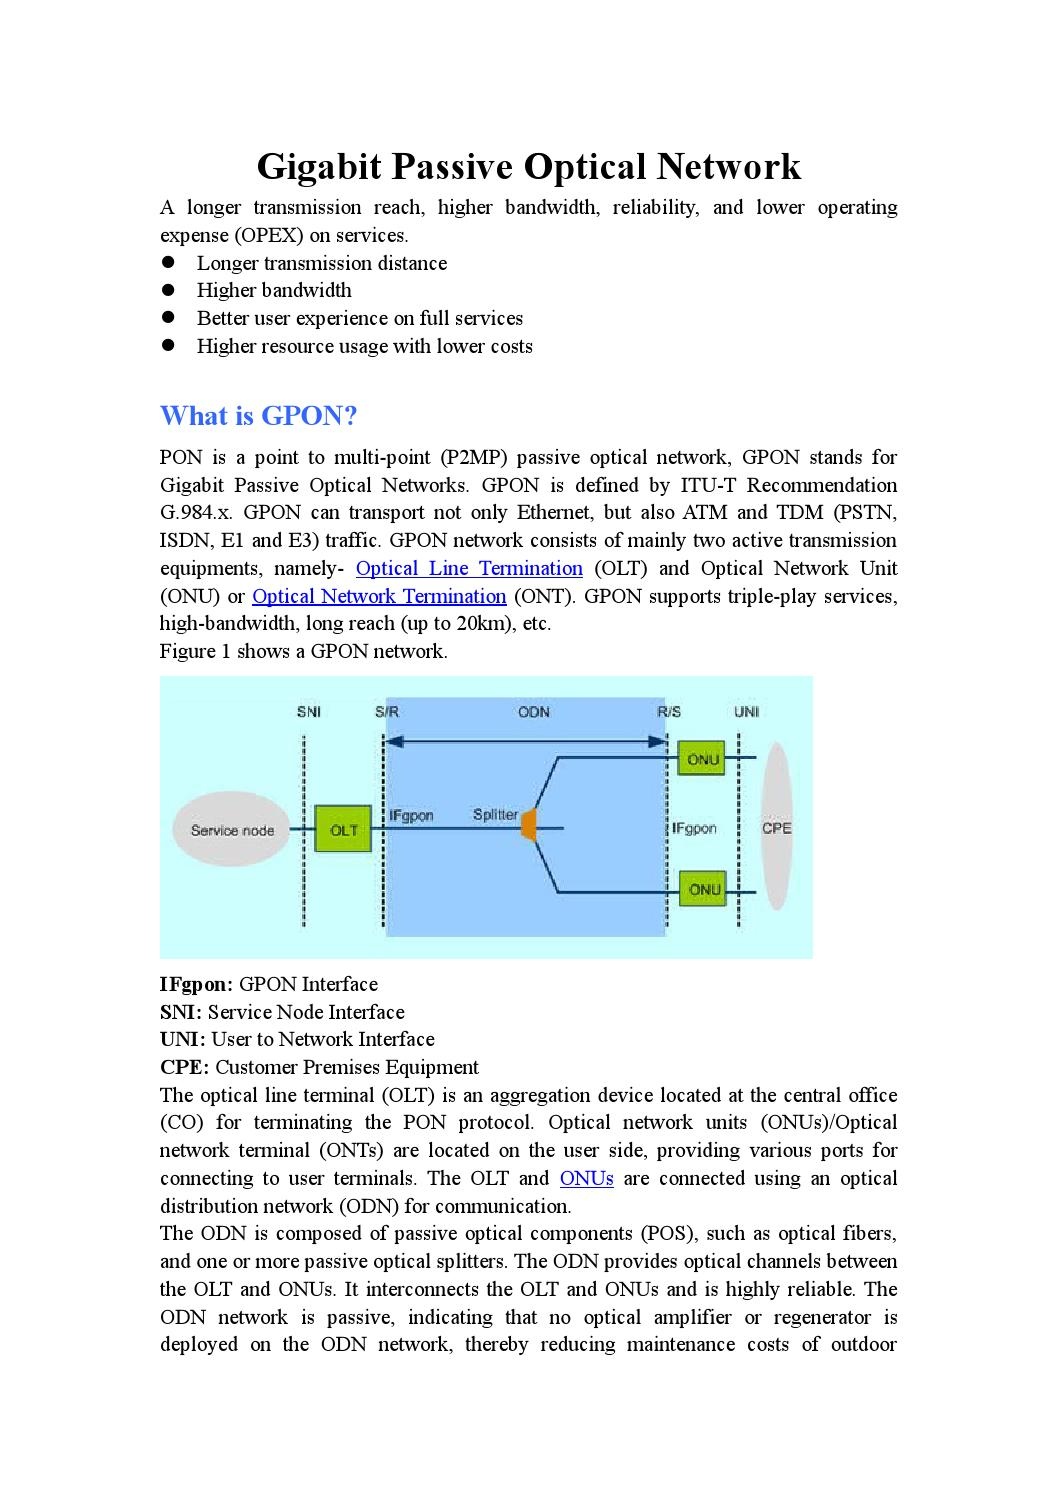 Ont, olt and mdu in gpon technology by huanetwork - issuu